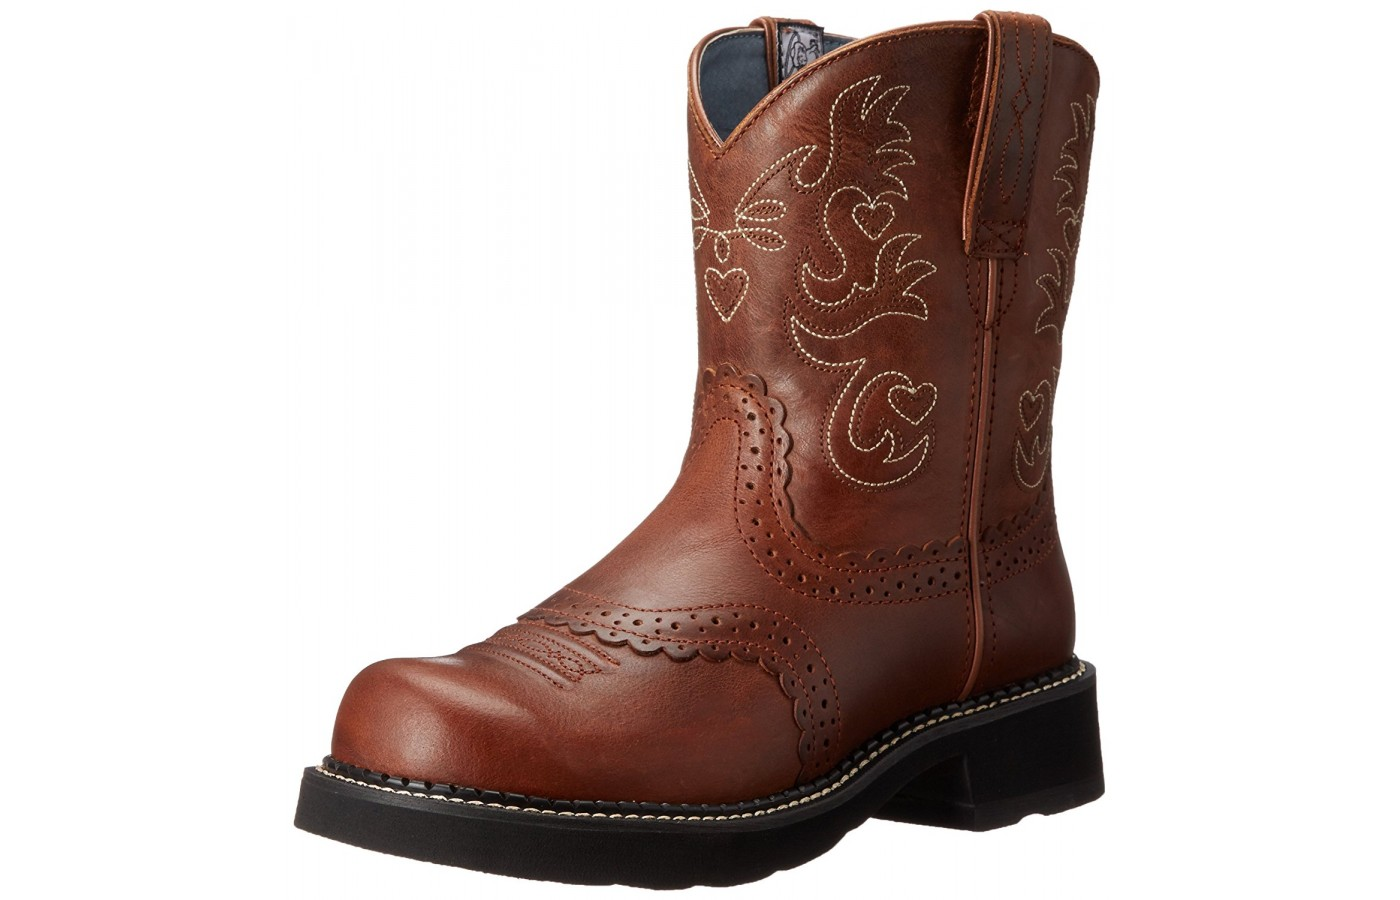 Angled view of the Ariat Fatbaby